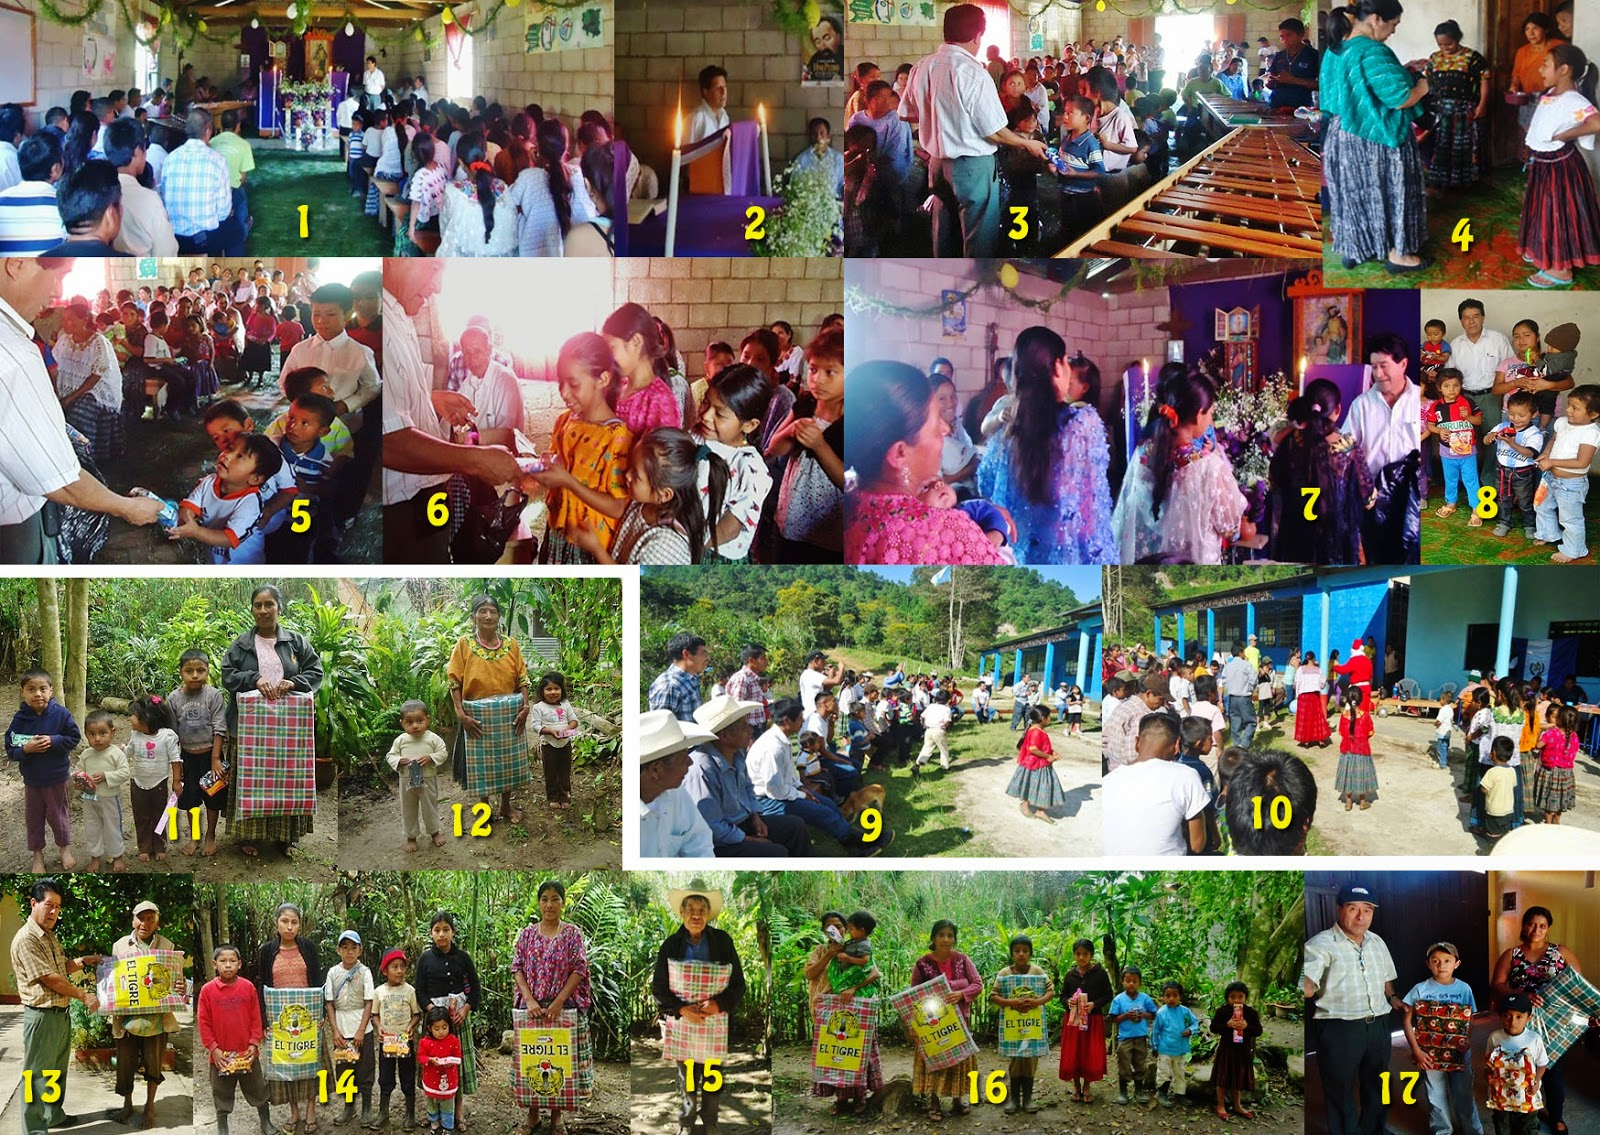 Guatemalan Foundation: January 2015